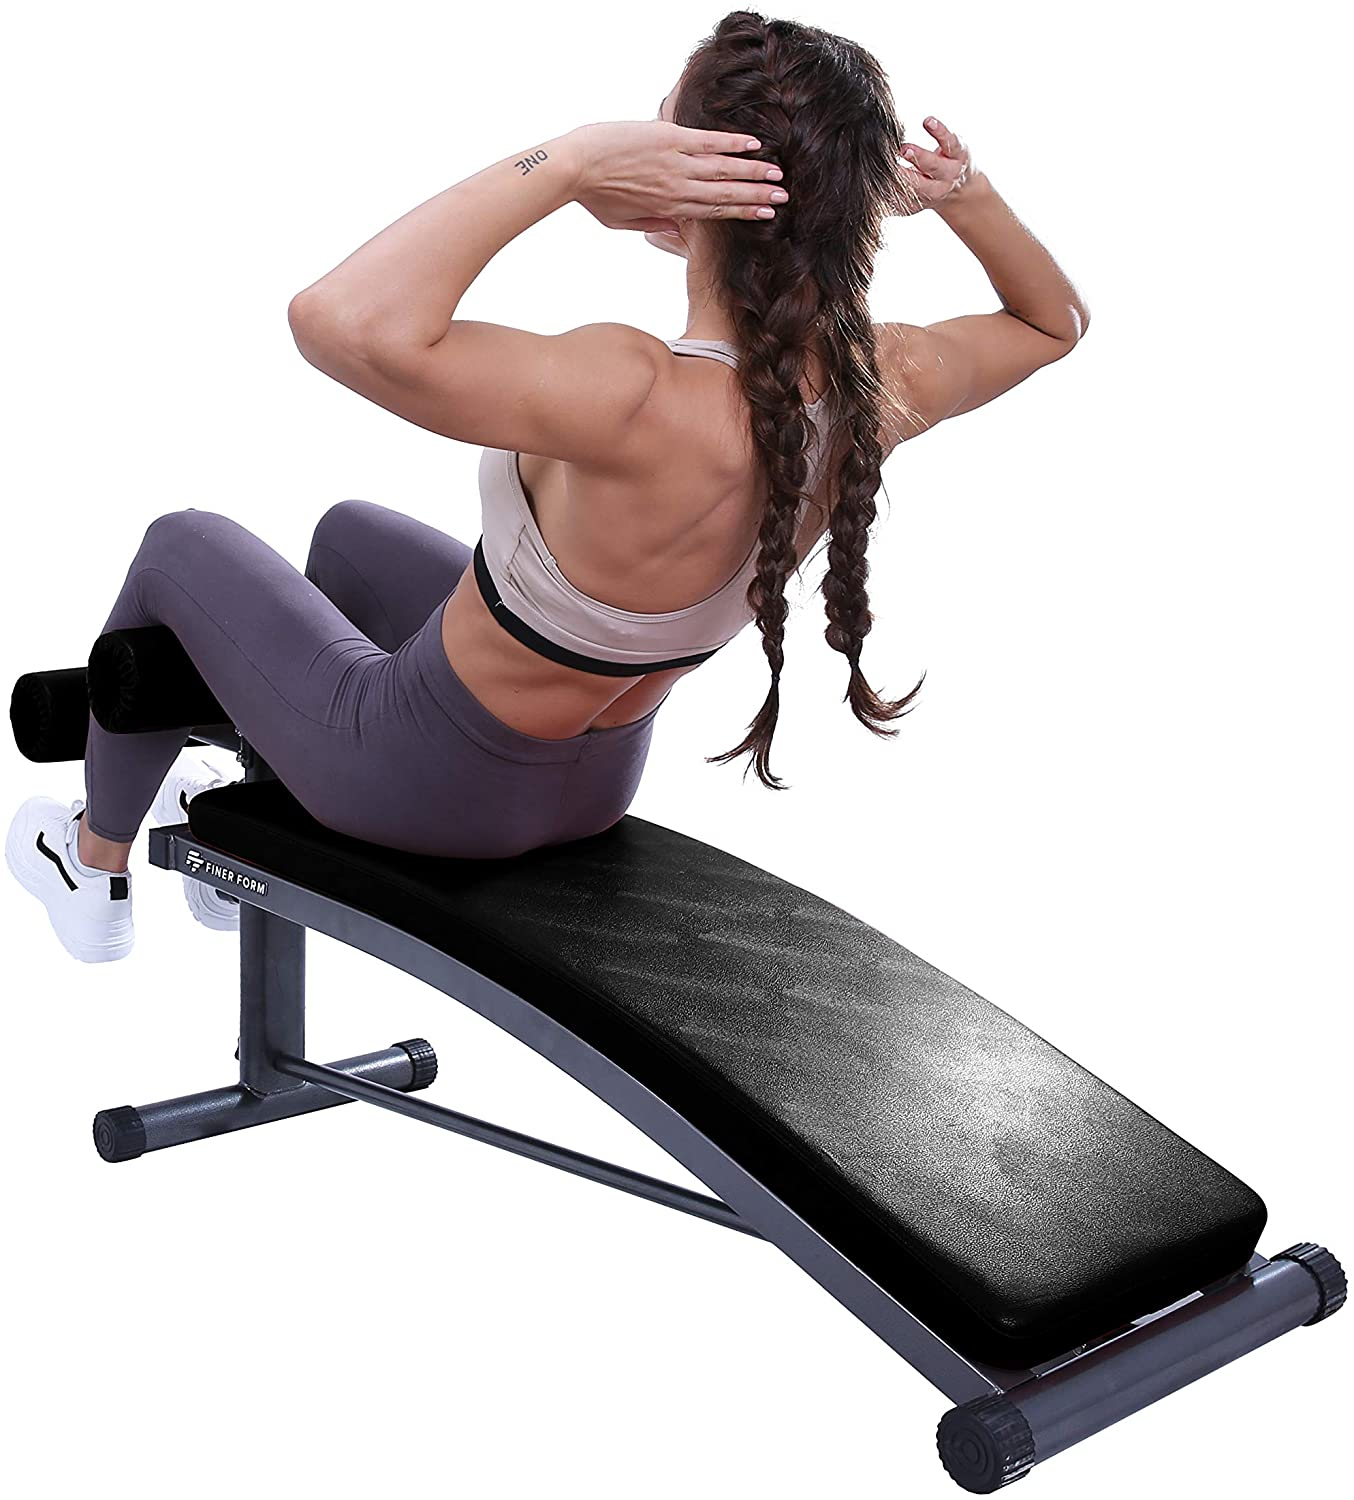 Finer Form Sit Up Bench with Reverse Crunch Handle for Ab Bench Exercises